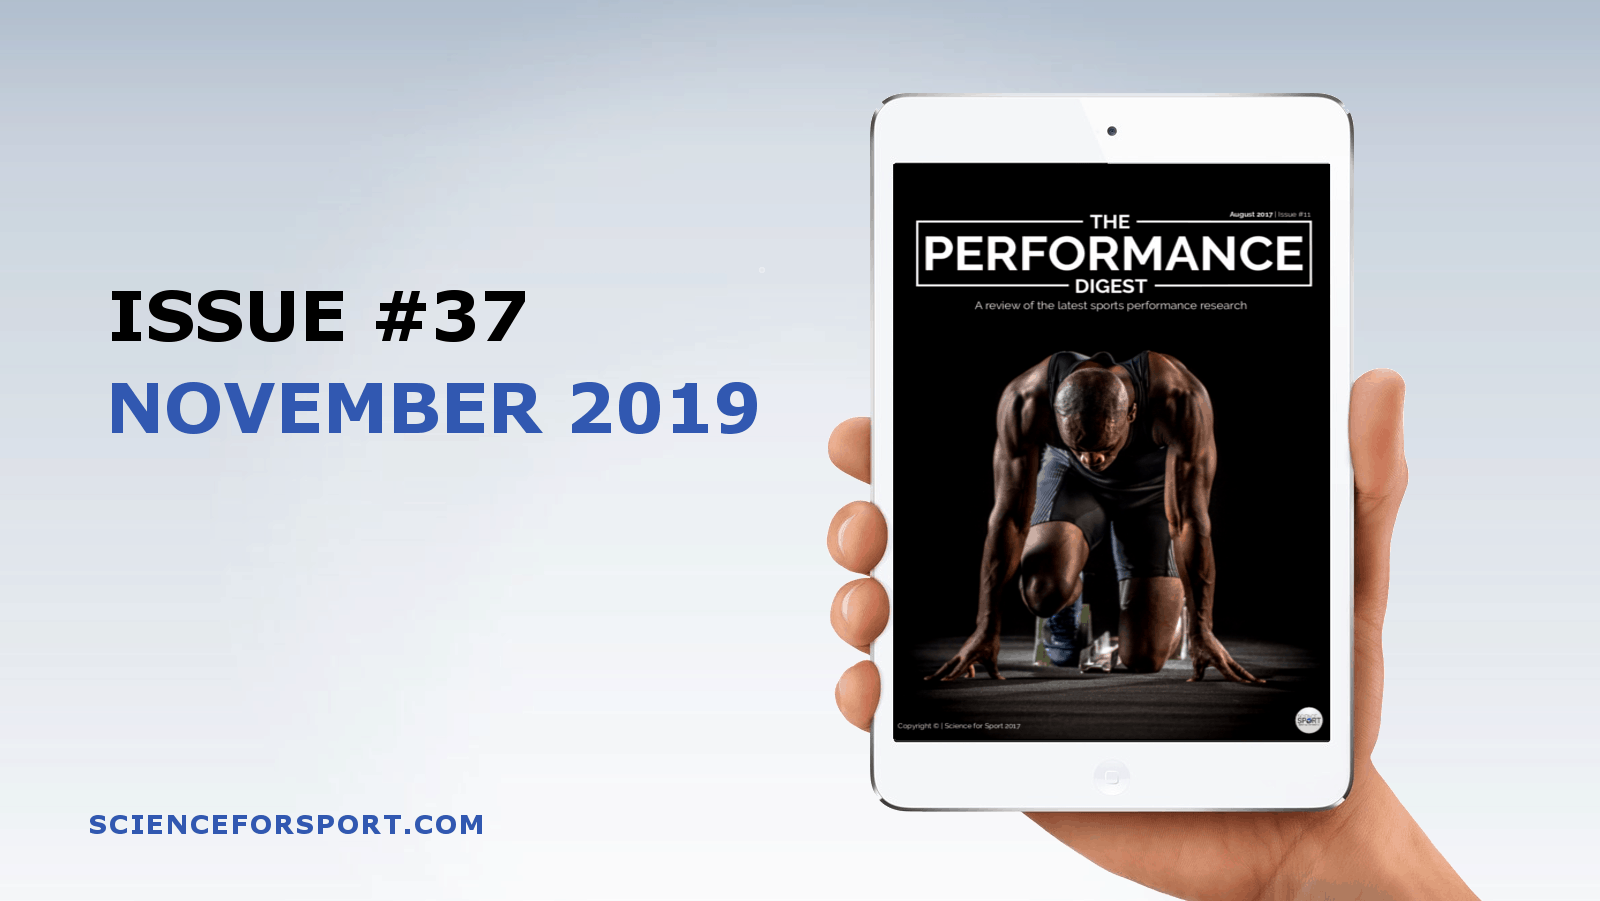 Performance Digest - November 19 (Issue #37)